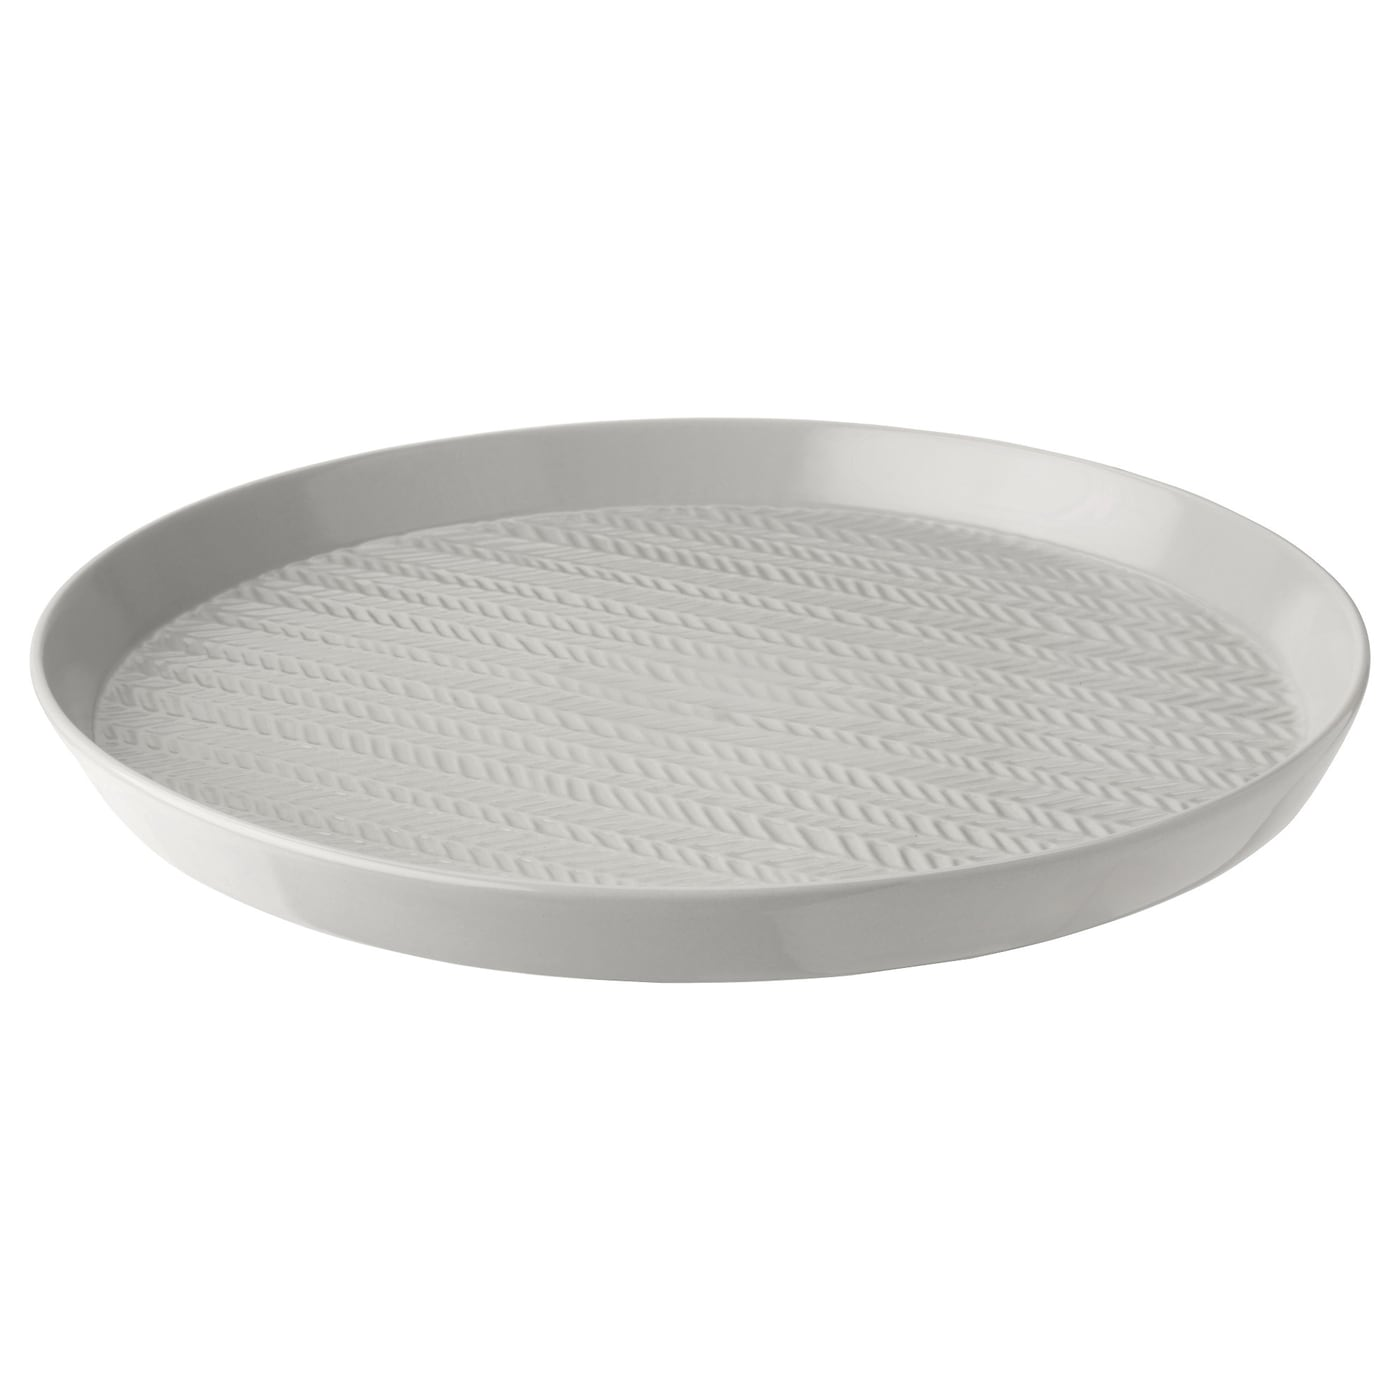 IKEA VINTER 2017 serving plate